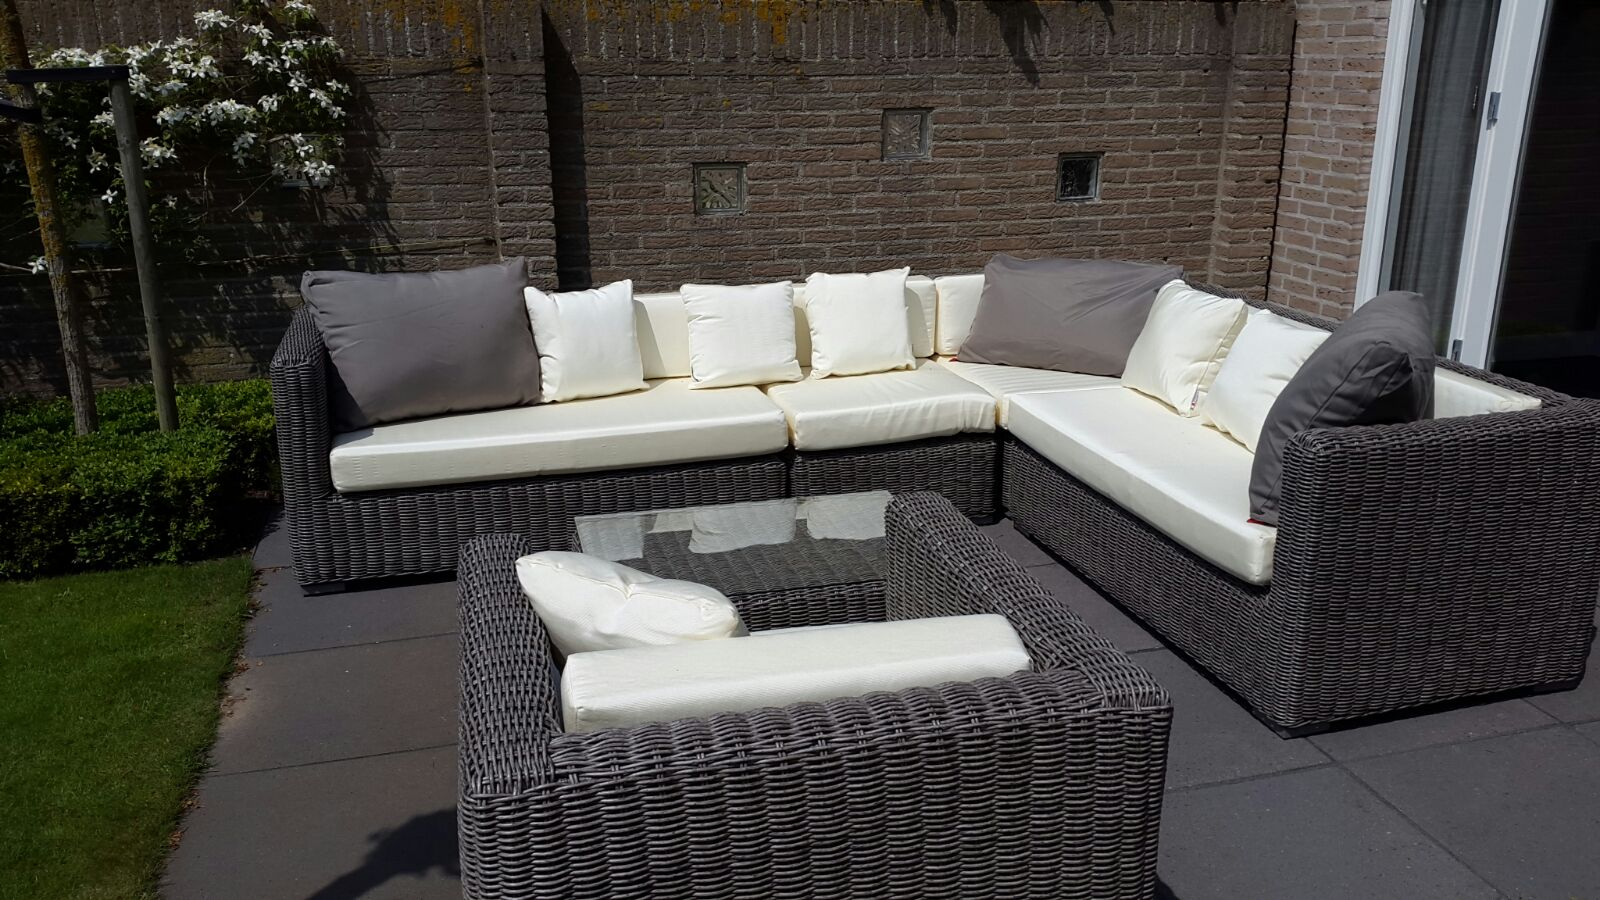 Loungeset Tuin Goedkoop : Aya loungeset. gallery of life block outdoor lounge set with aya